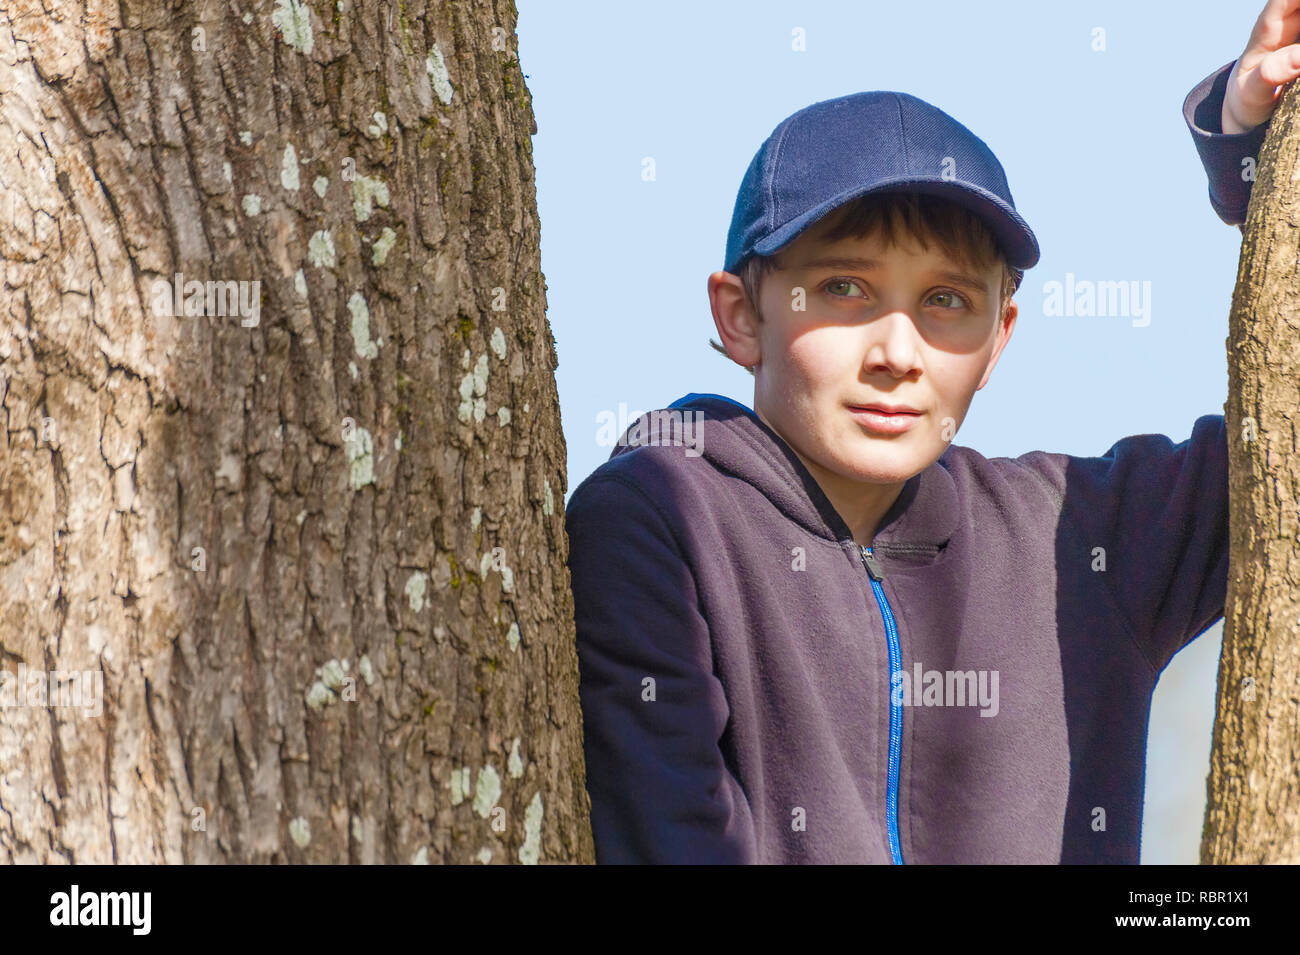 Close up of a young boy in a tree wearing a blue sweatshirt and ball cap. - Stock Image